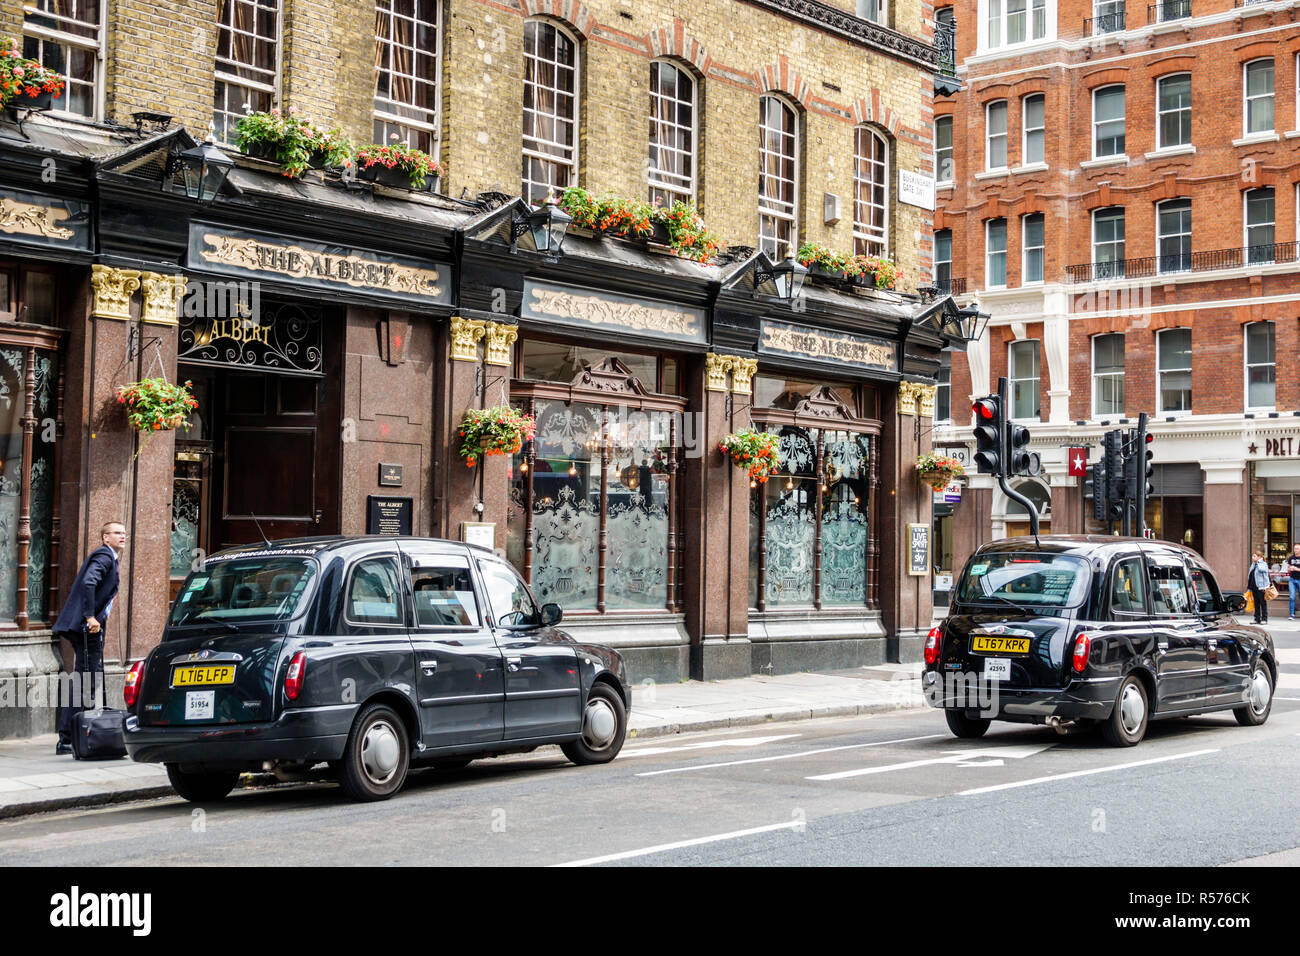 London England United Kingdom Great Britain Westminster Victoria Street The Albert Pub Victorian public house building exterior black taxicab taxi hac Stock Photo